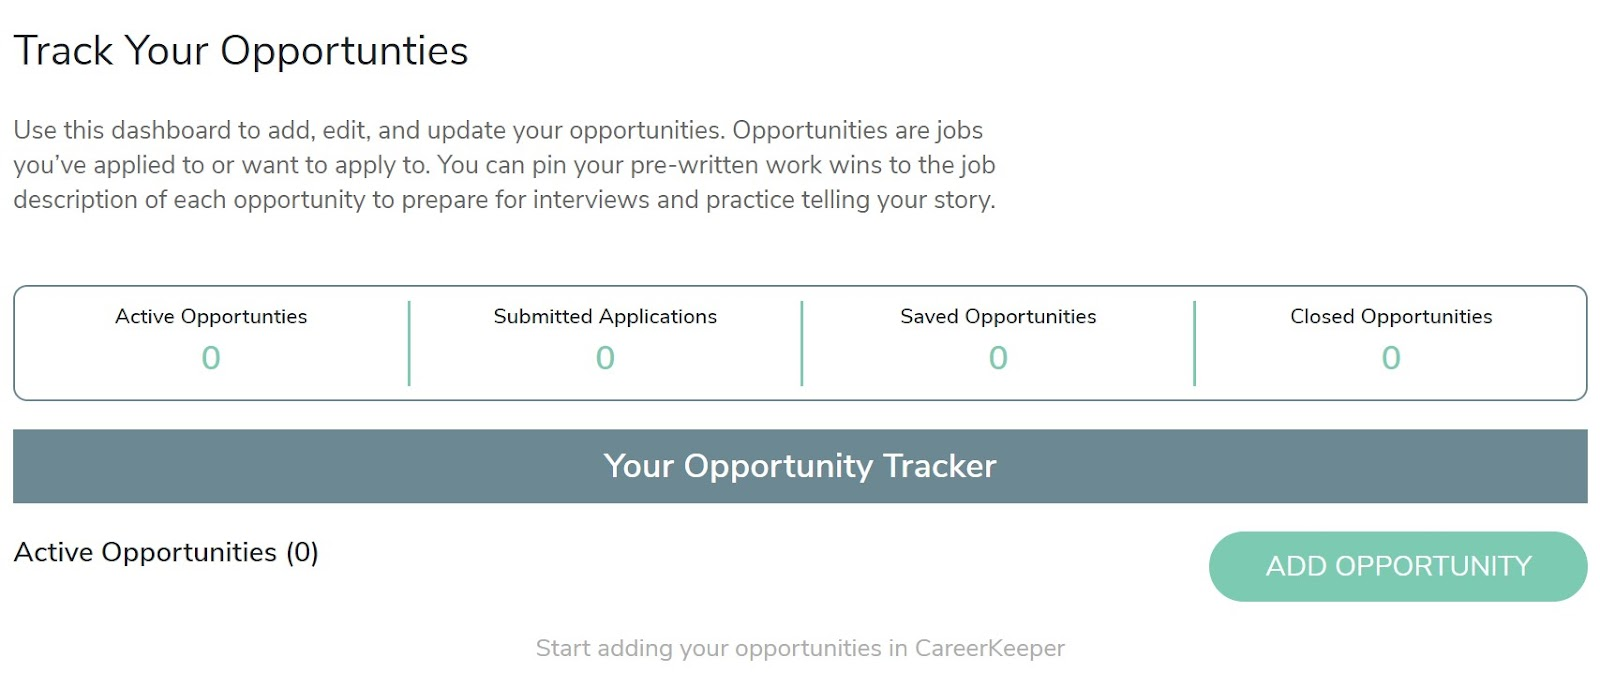 Track Your Job Opportunities